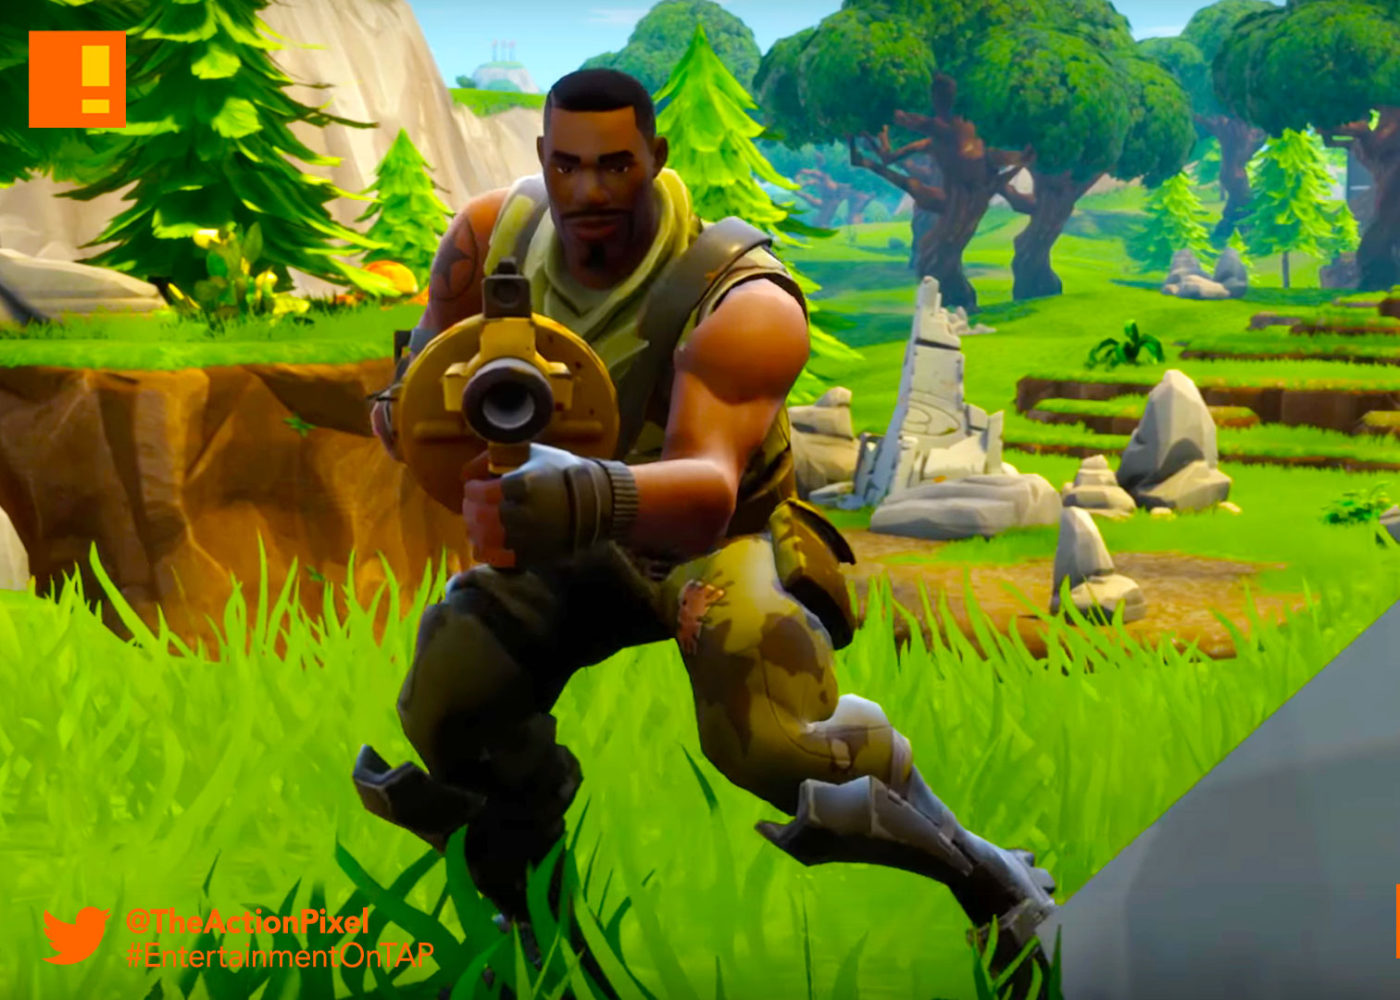 Fortnite Battle Royale ,Gameplay Trailer,the action pixel, entertainment on tap,